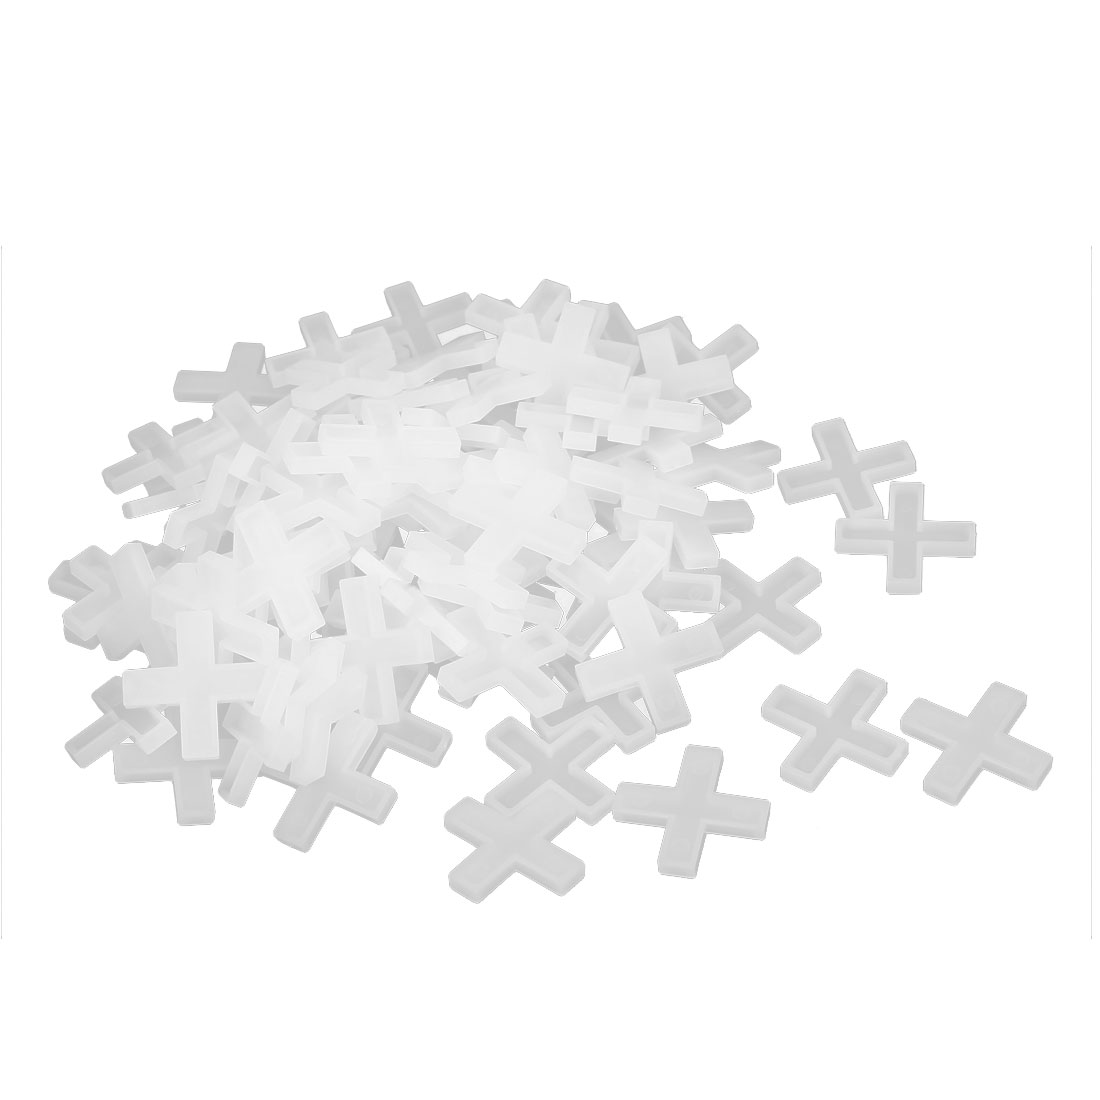 Wall Floor Tile Plastic Cross Spacer 6mm White 100pcs